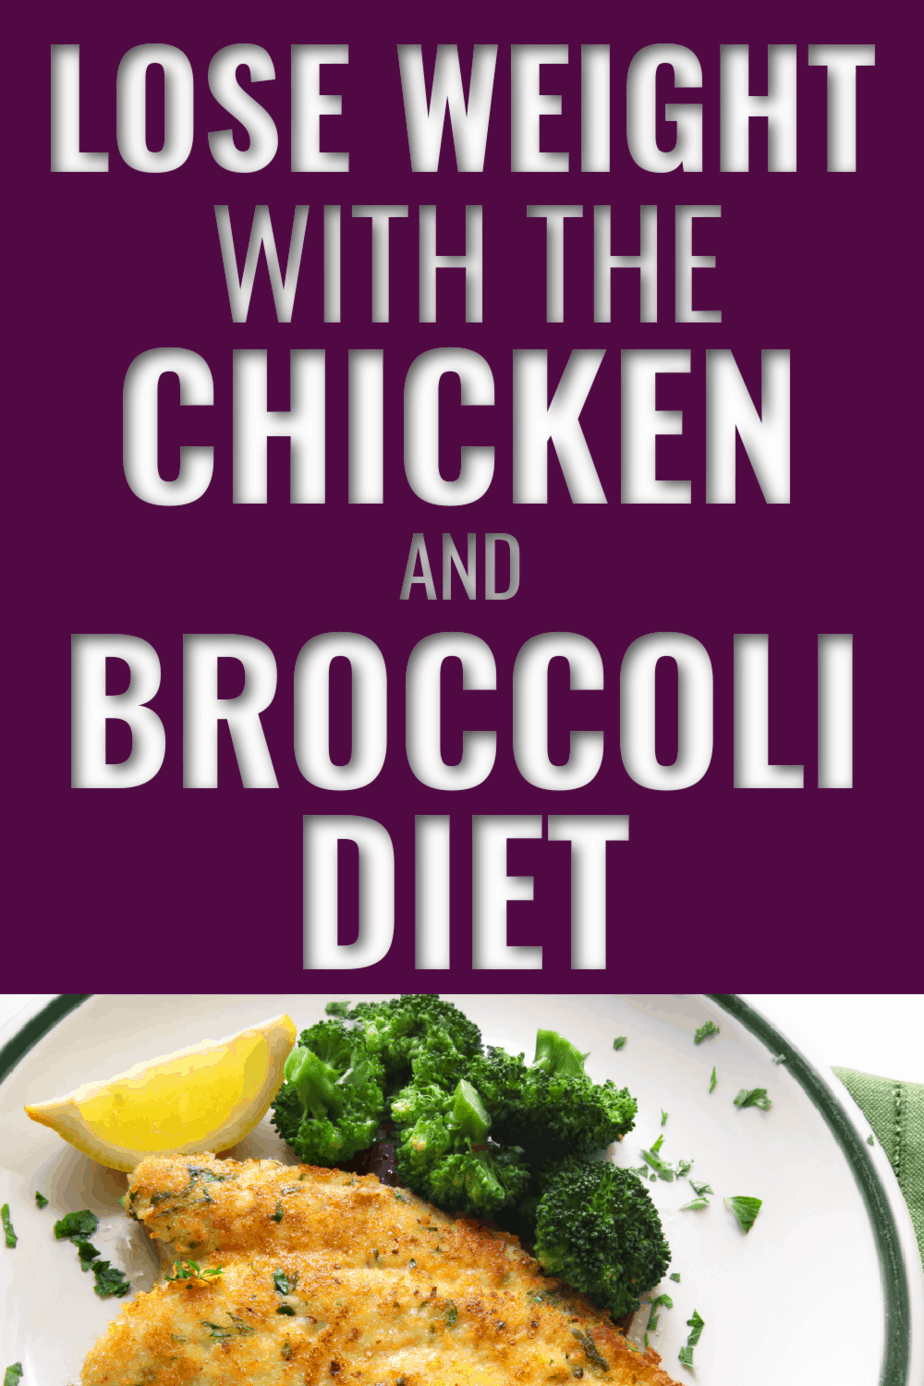 The Chicken and Broccoli Diet